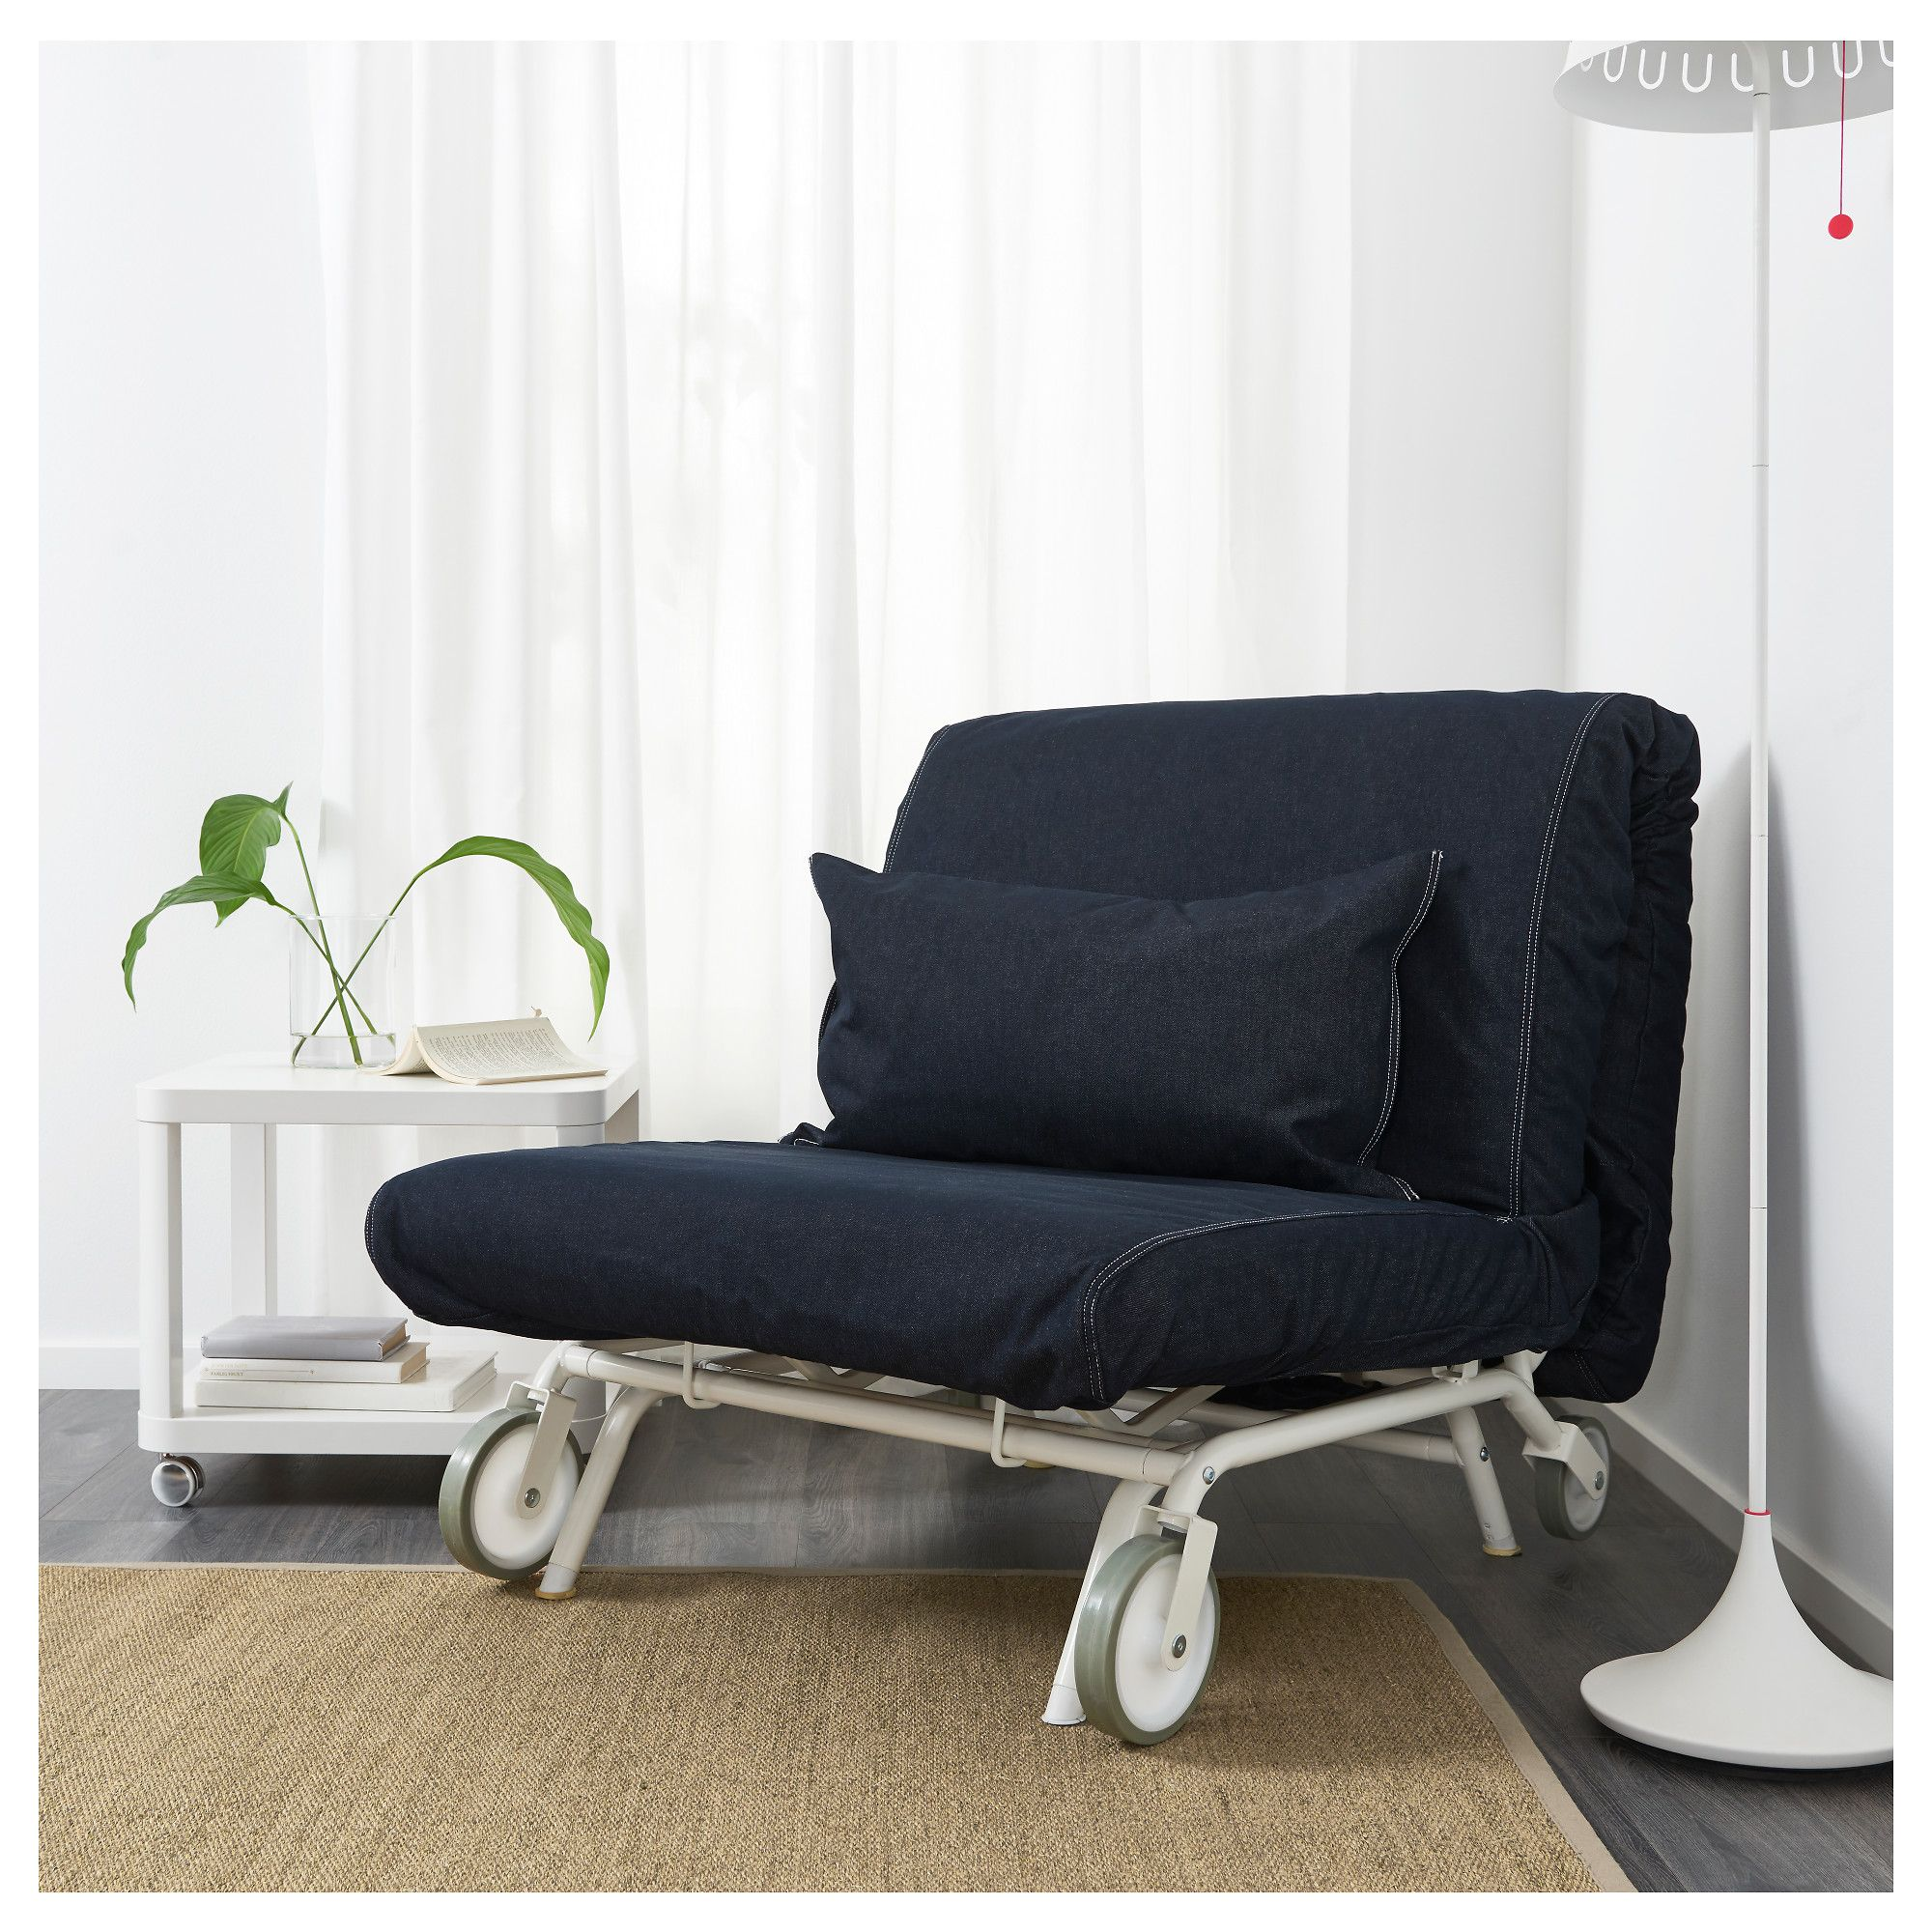 Ikea Ps Murbo Sleeper Chair Ikea Bed Sofa Bed Sale Ikea Sofa Bed